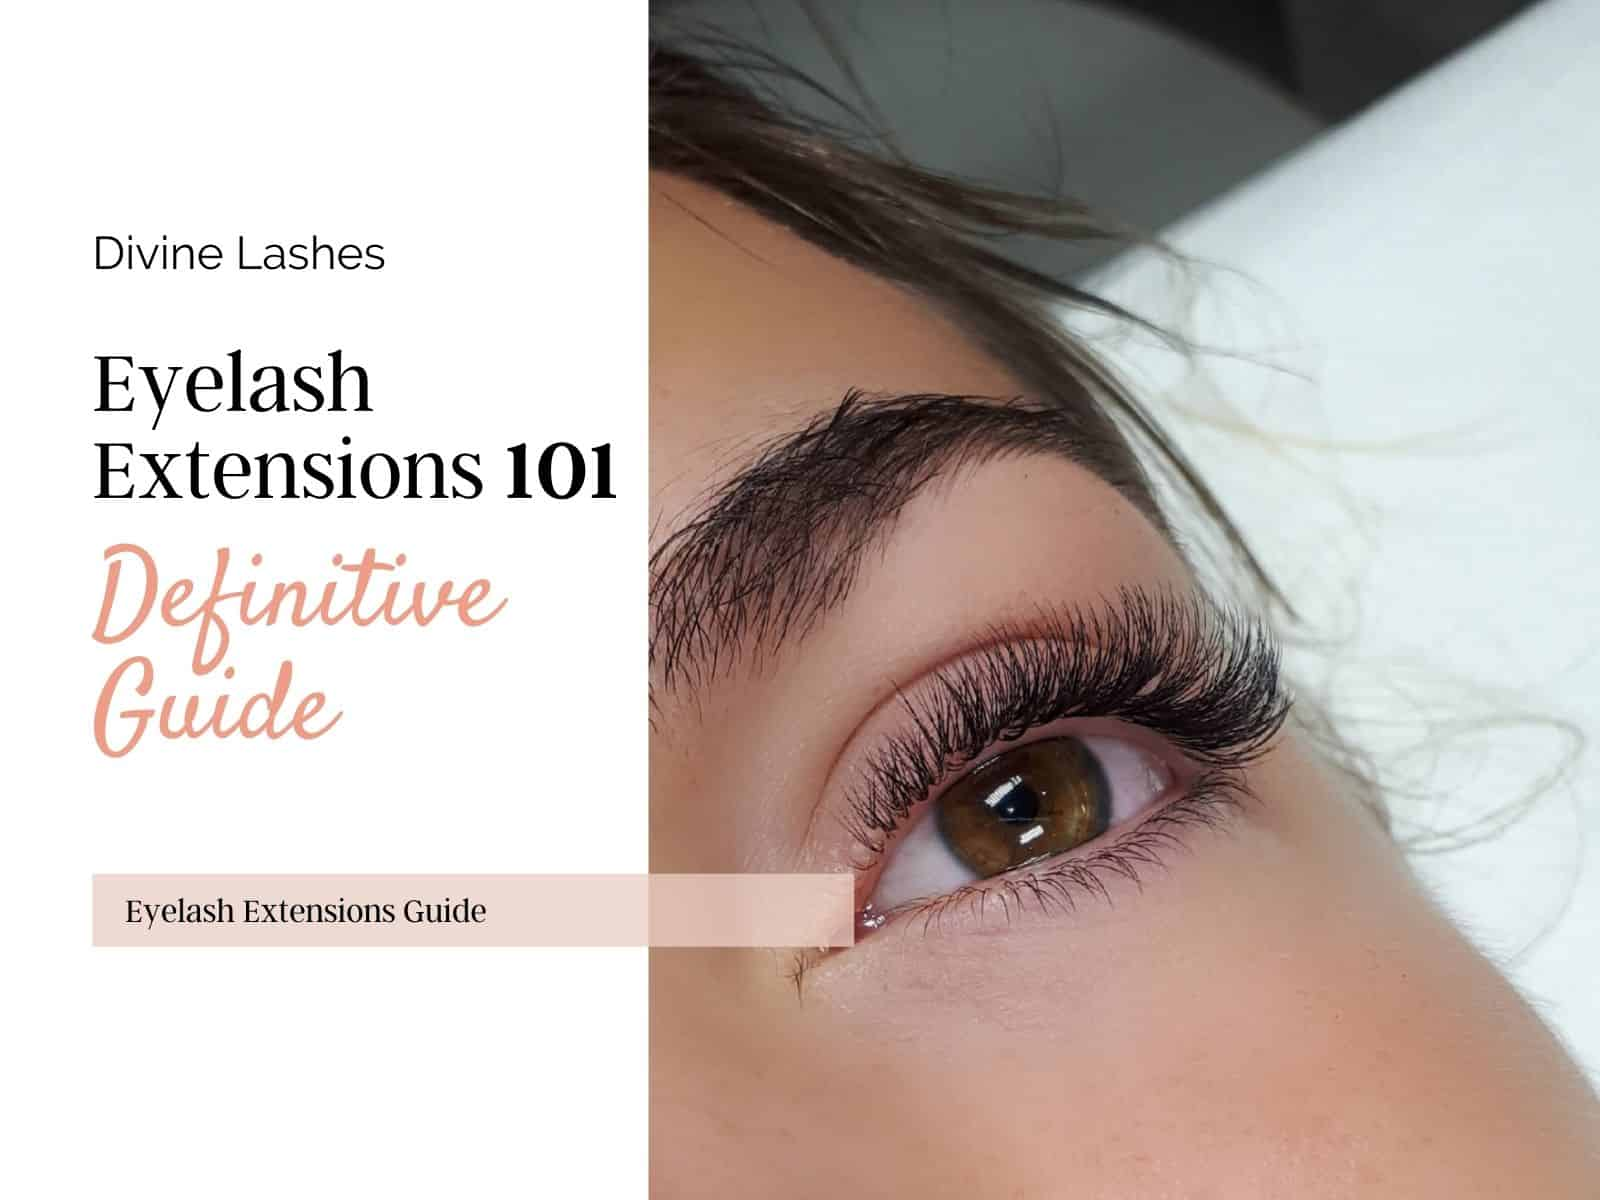 Eyelash Extensions 101: The Definitive Guide